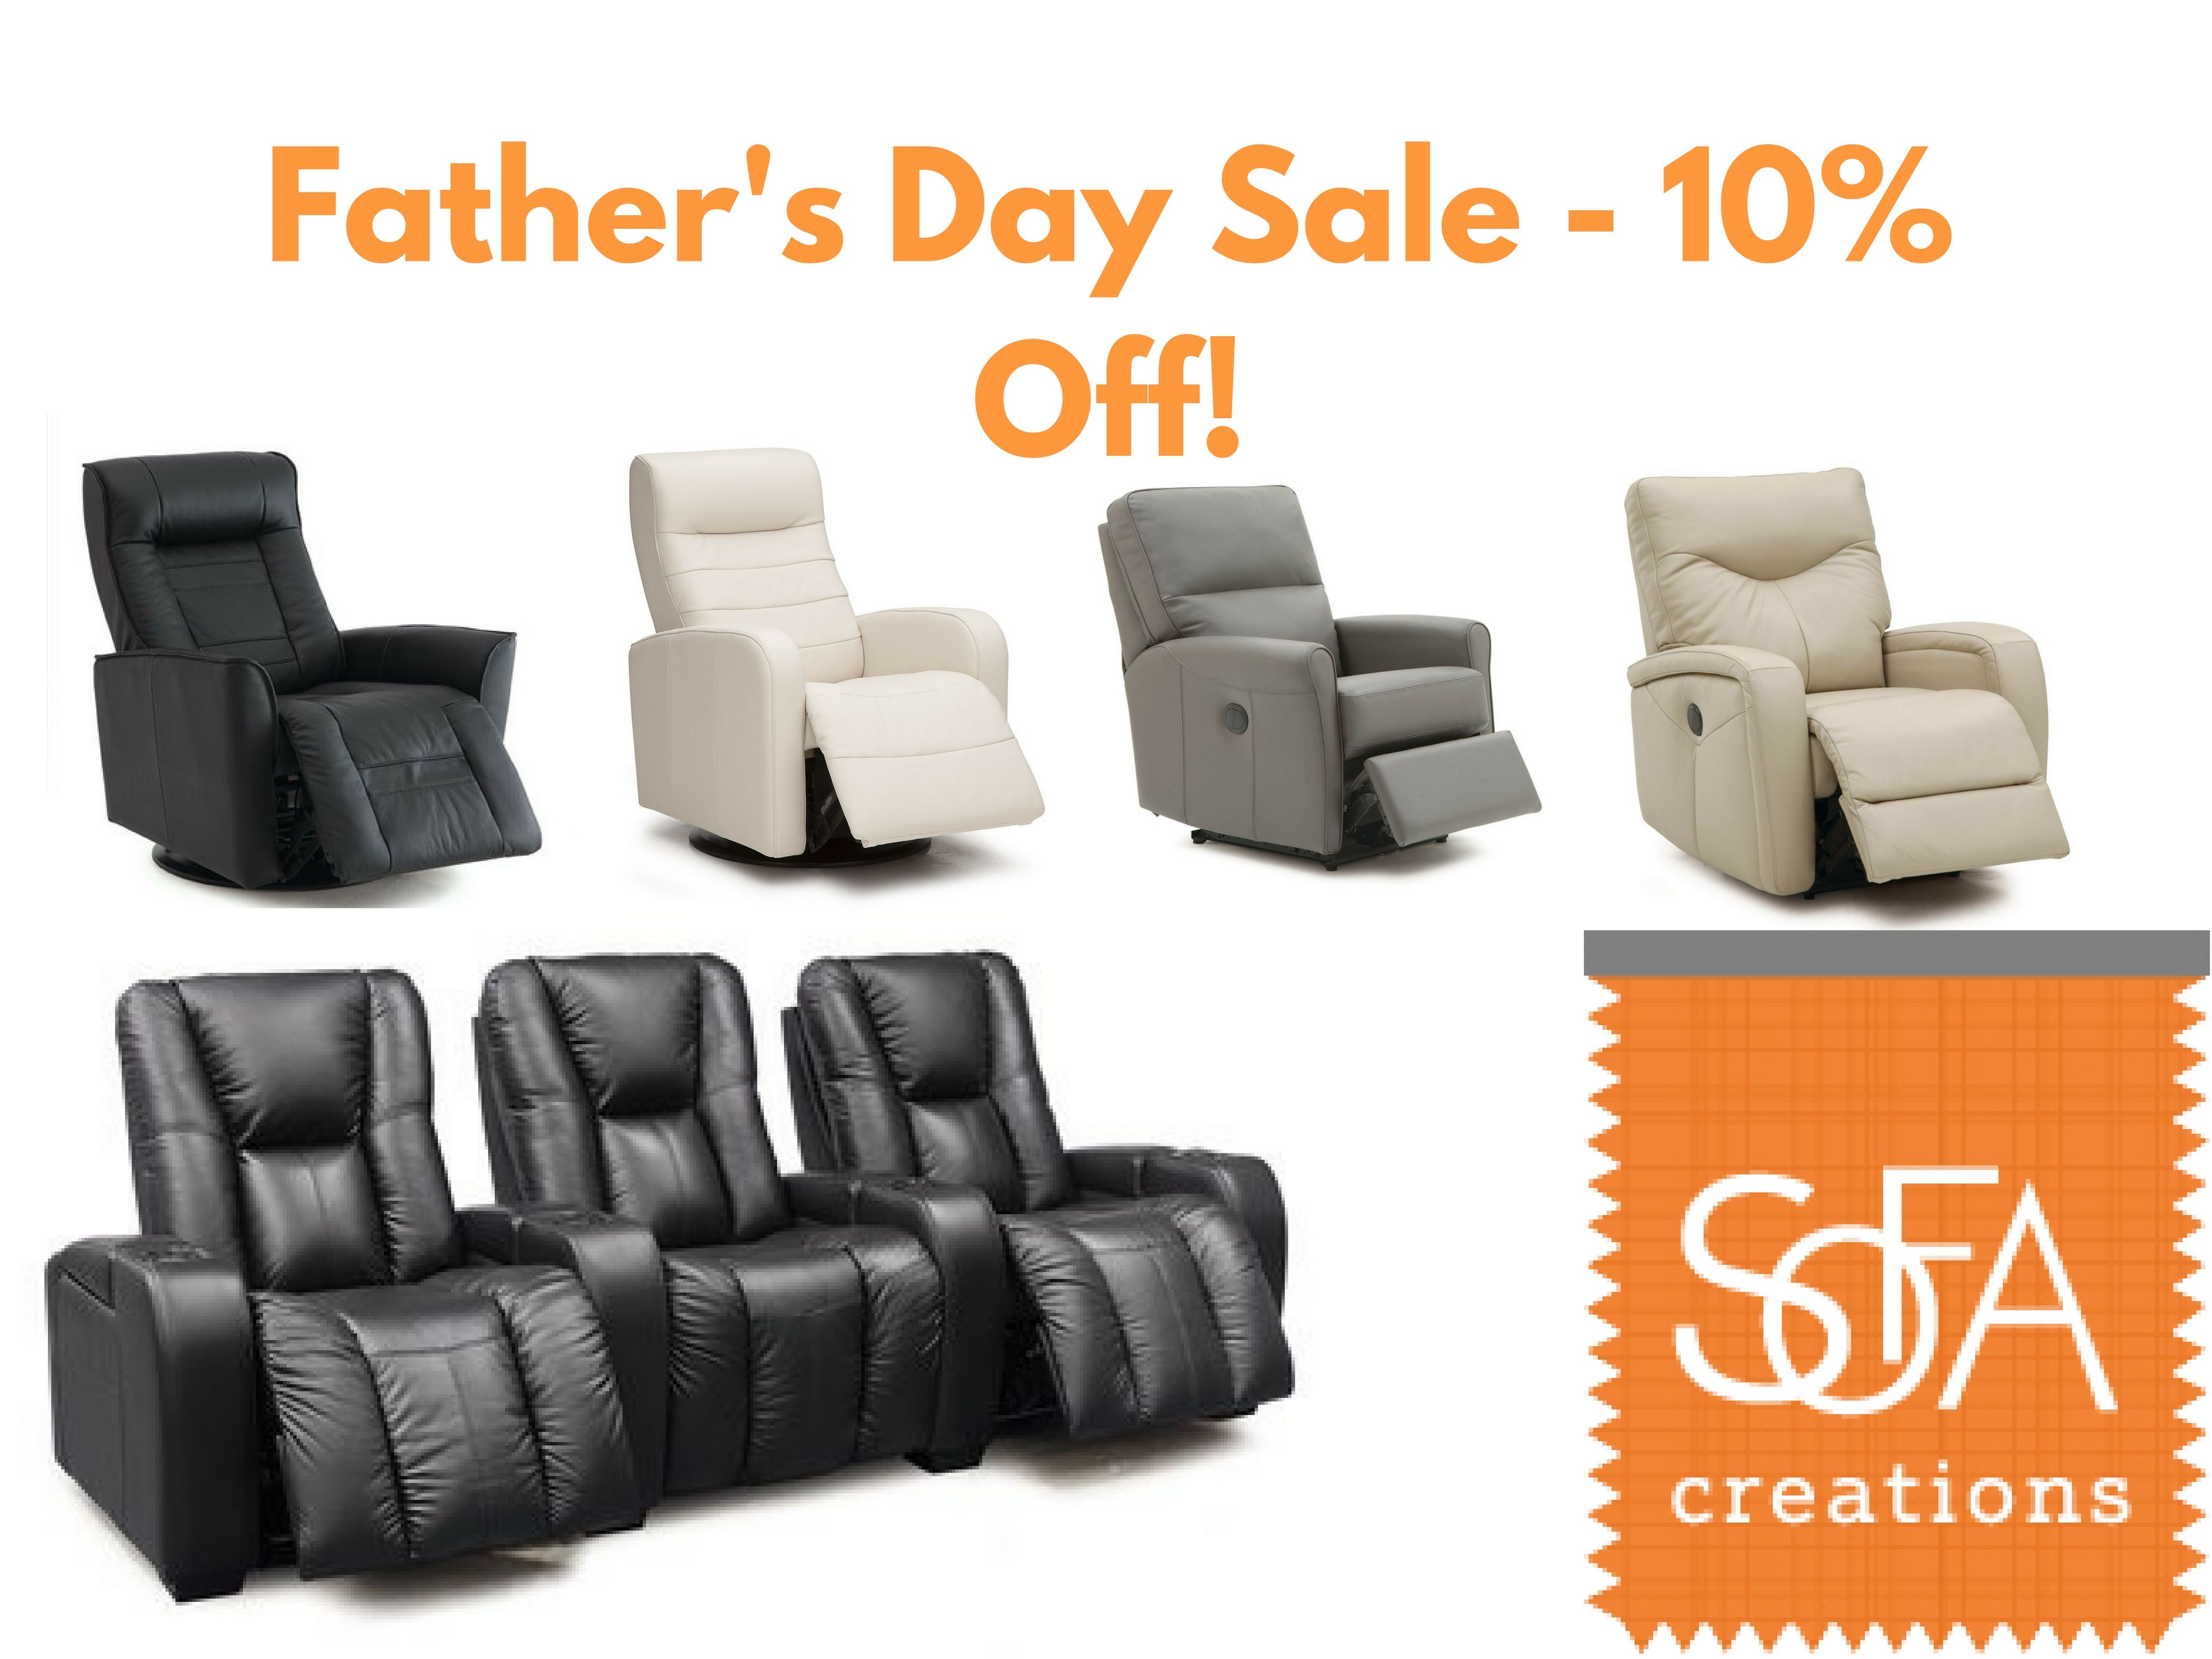 We Re Celebrating Father S Day With A 10 Off Sale On All Our Reclining Furniture Come Check Out One Of Our Sho Reclining Furniture Custom Sofa Quality Sofas